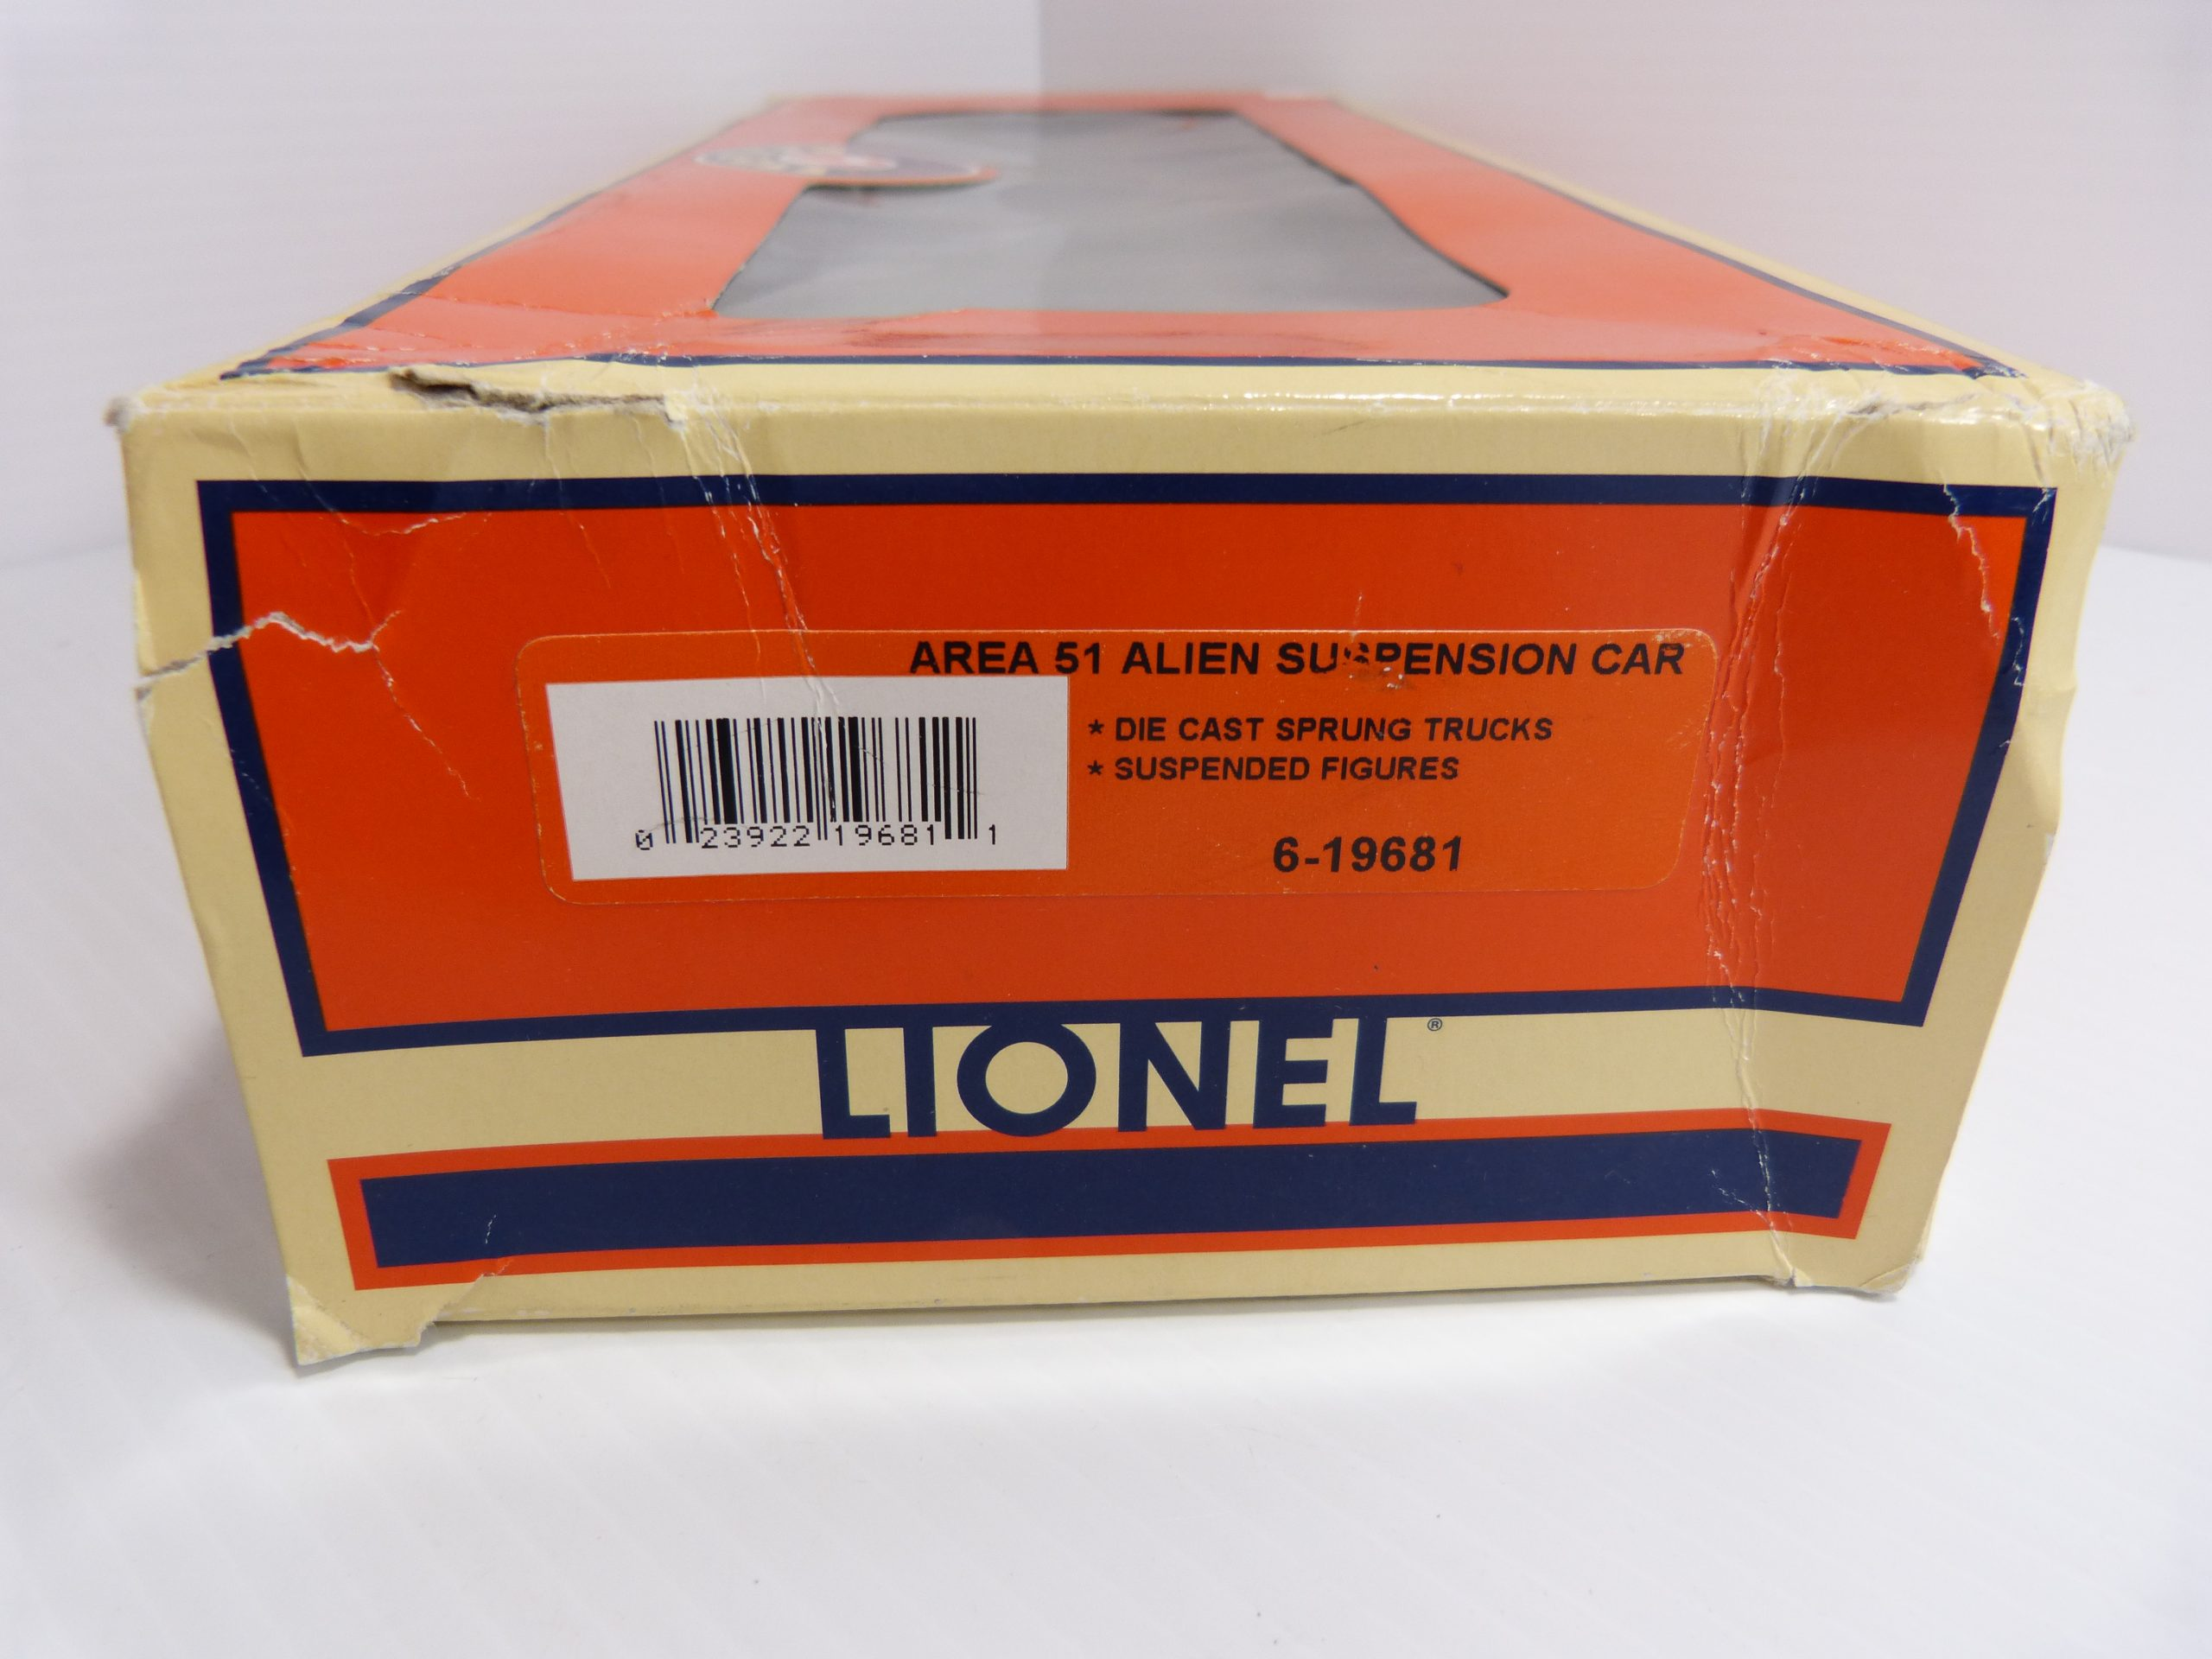 Lionel Area 51 Alien Suspension Car - 6-19681 - NIB